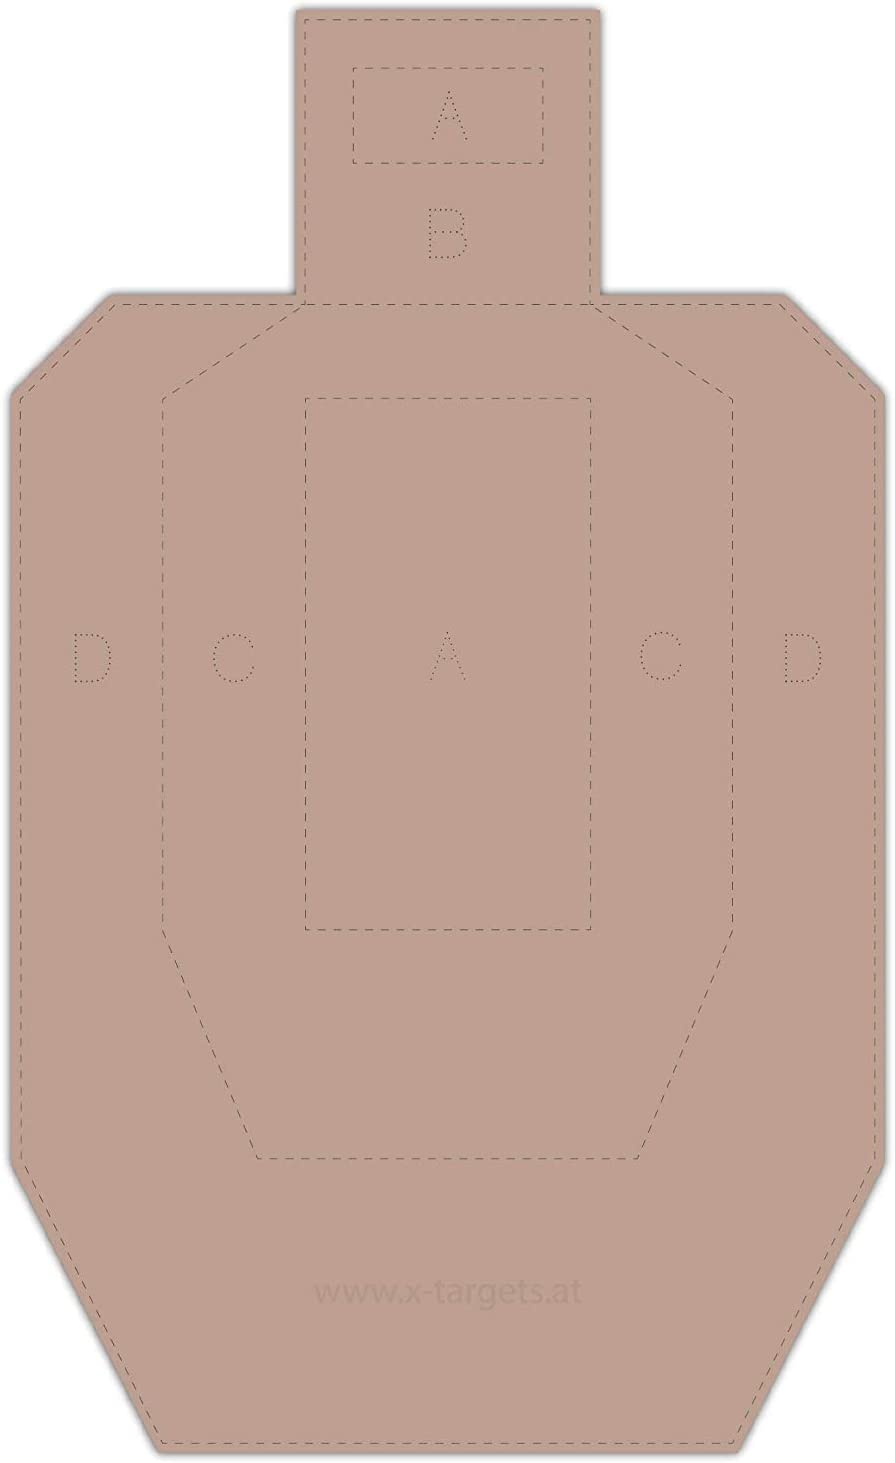 Metric Cardboard X-Targets USPSA Competition Disc